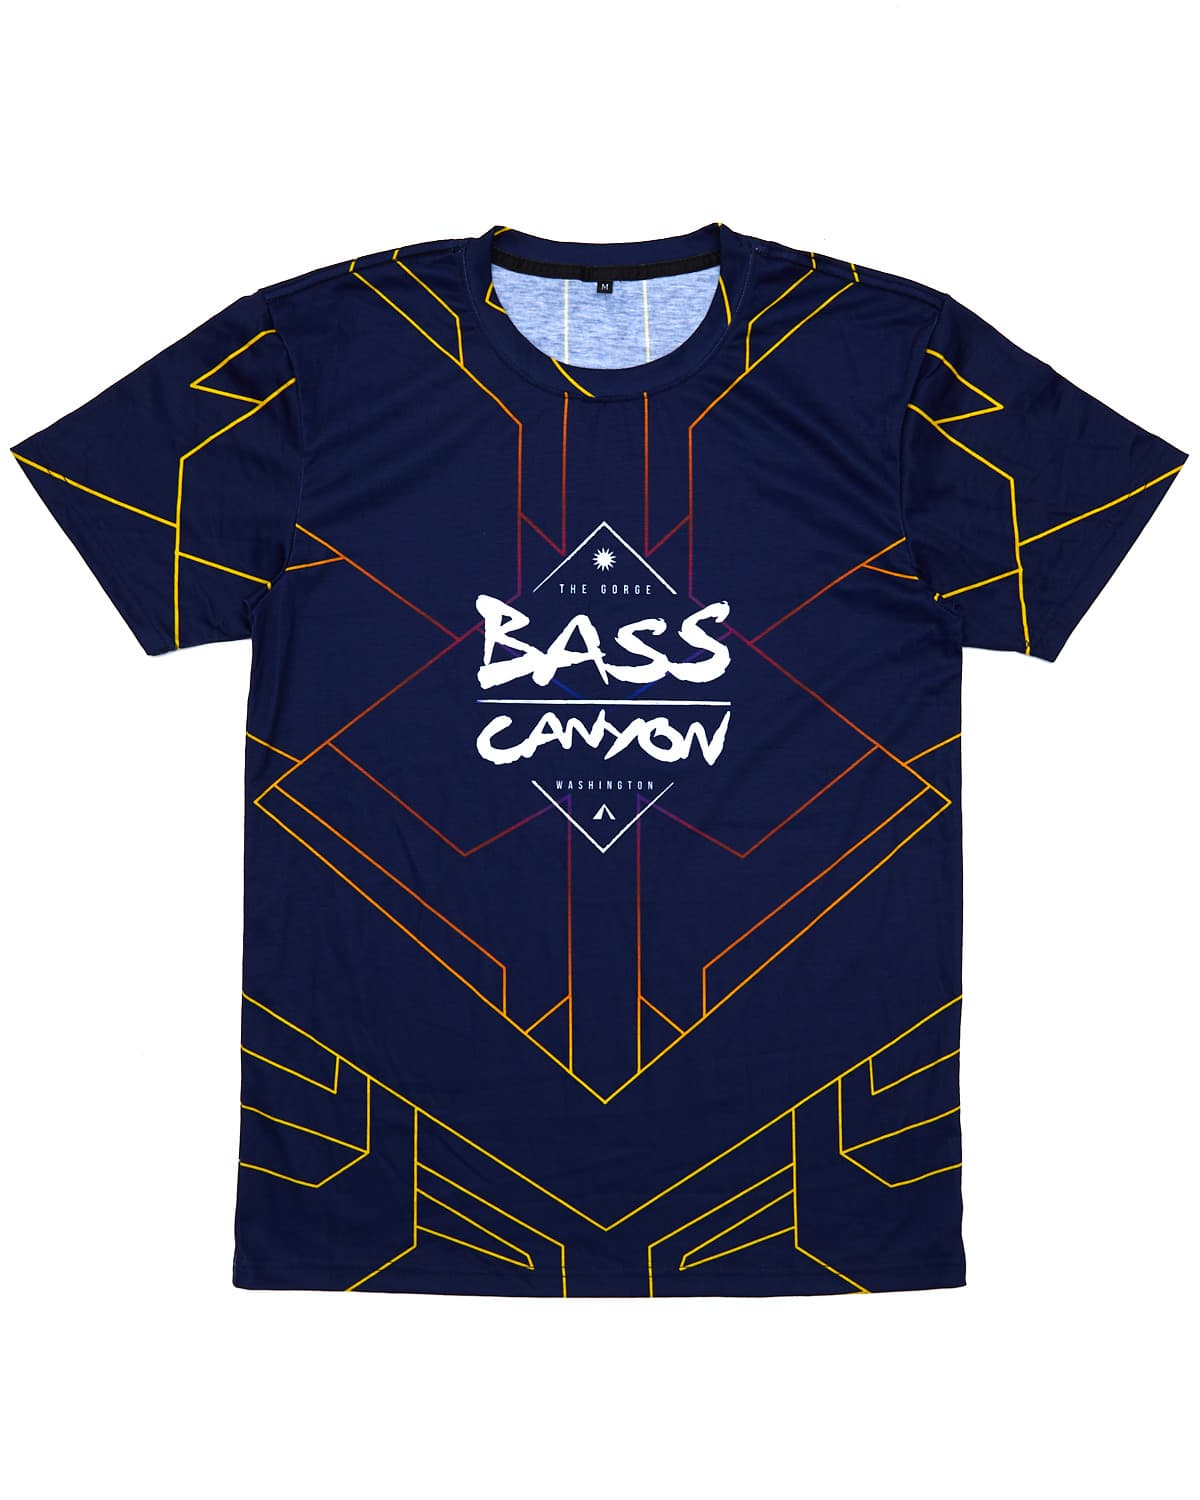 Official 'Bass Canyon' Dye-Sublimated Tee